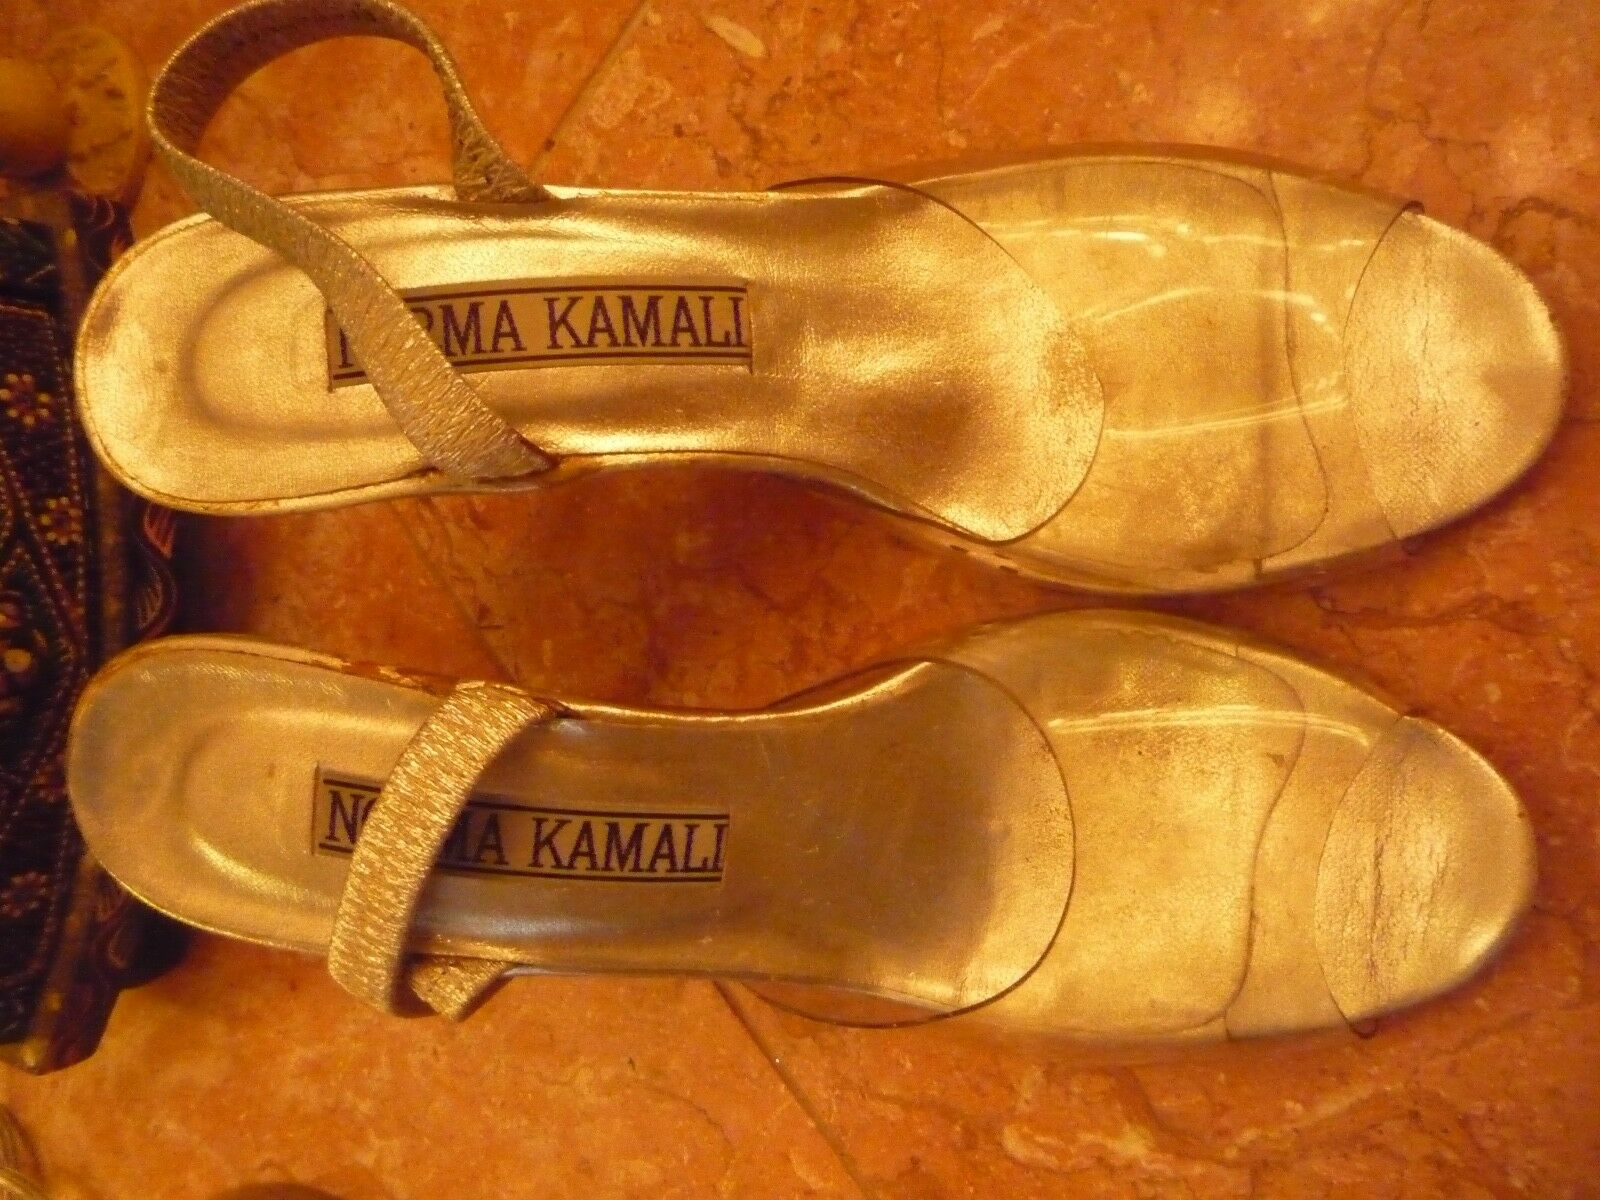 celebrity owned Norma Kamali vintage retro clear glass slipper heels shoes